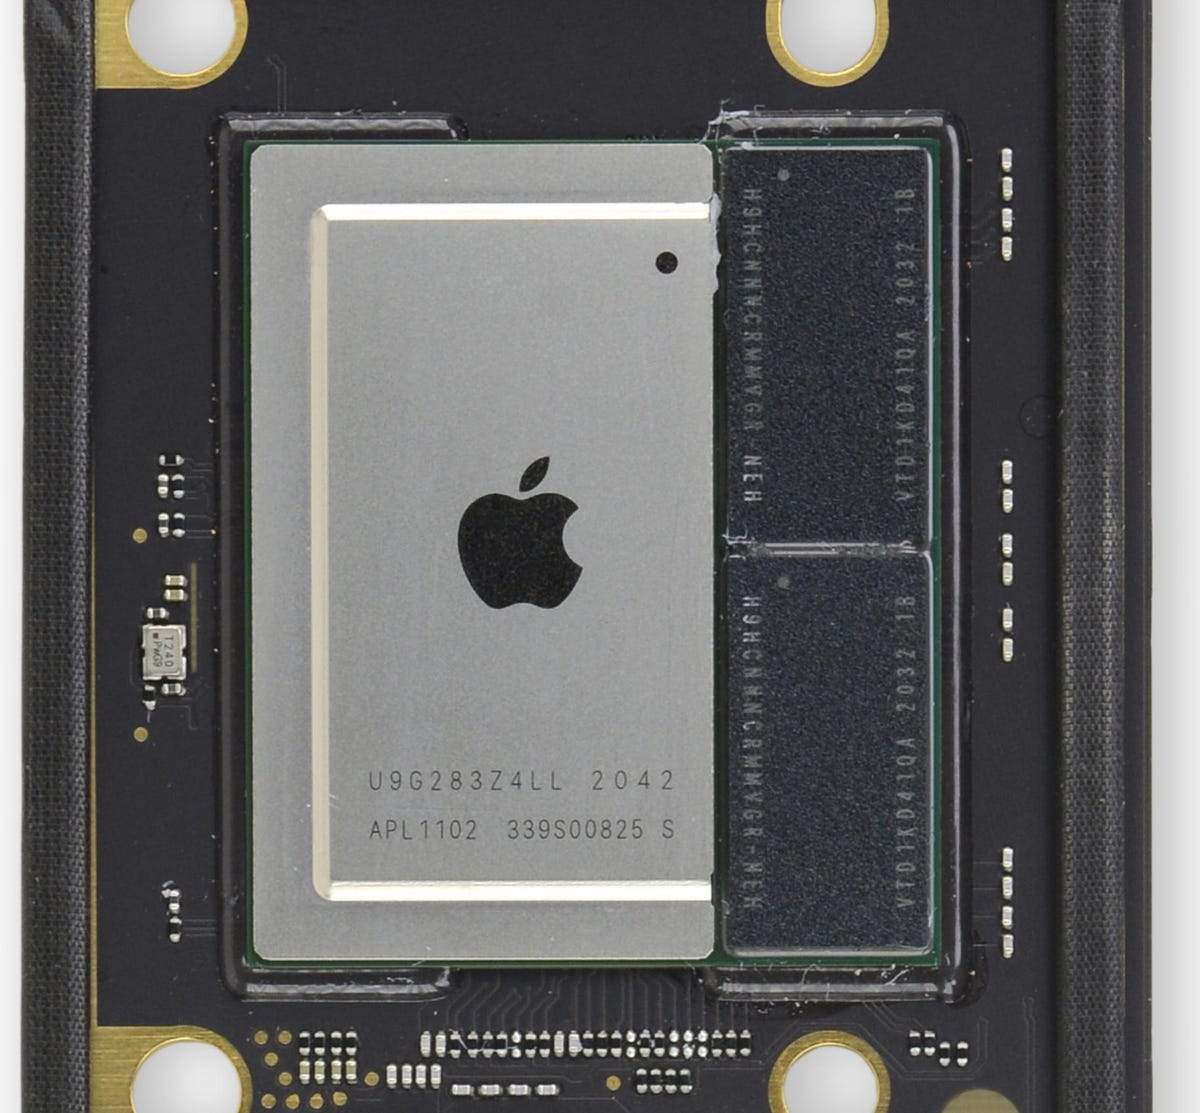 M1 chip (on the MacBook Air mainboard)